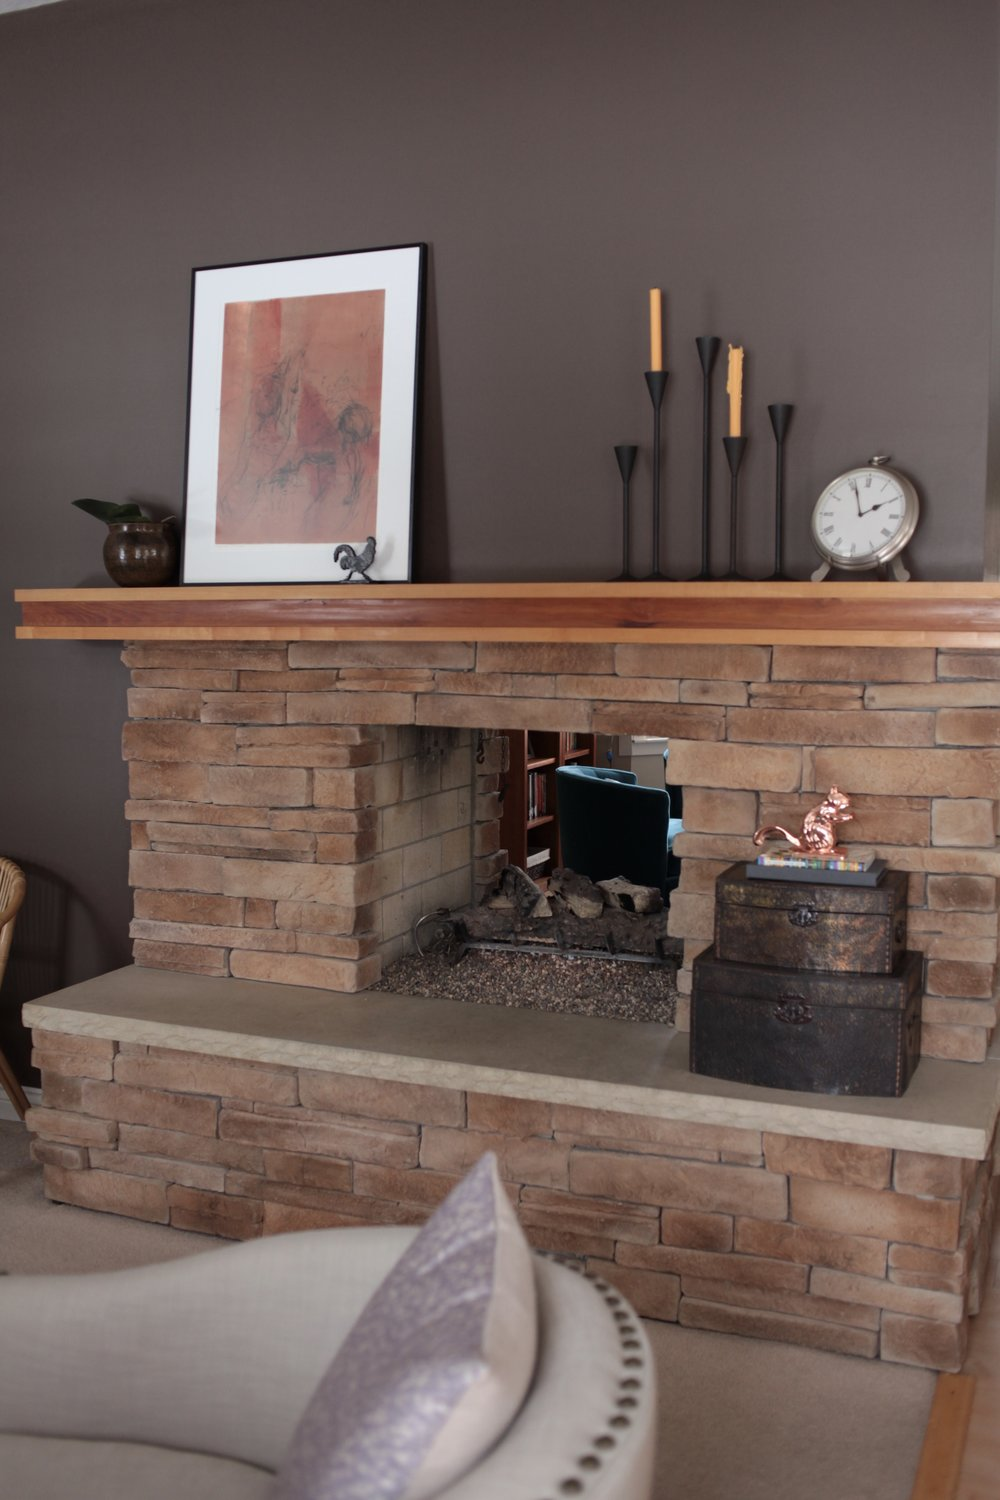 Styled large fireplace with modern black candlesticks and orange art.jpeg